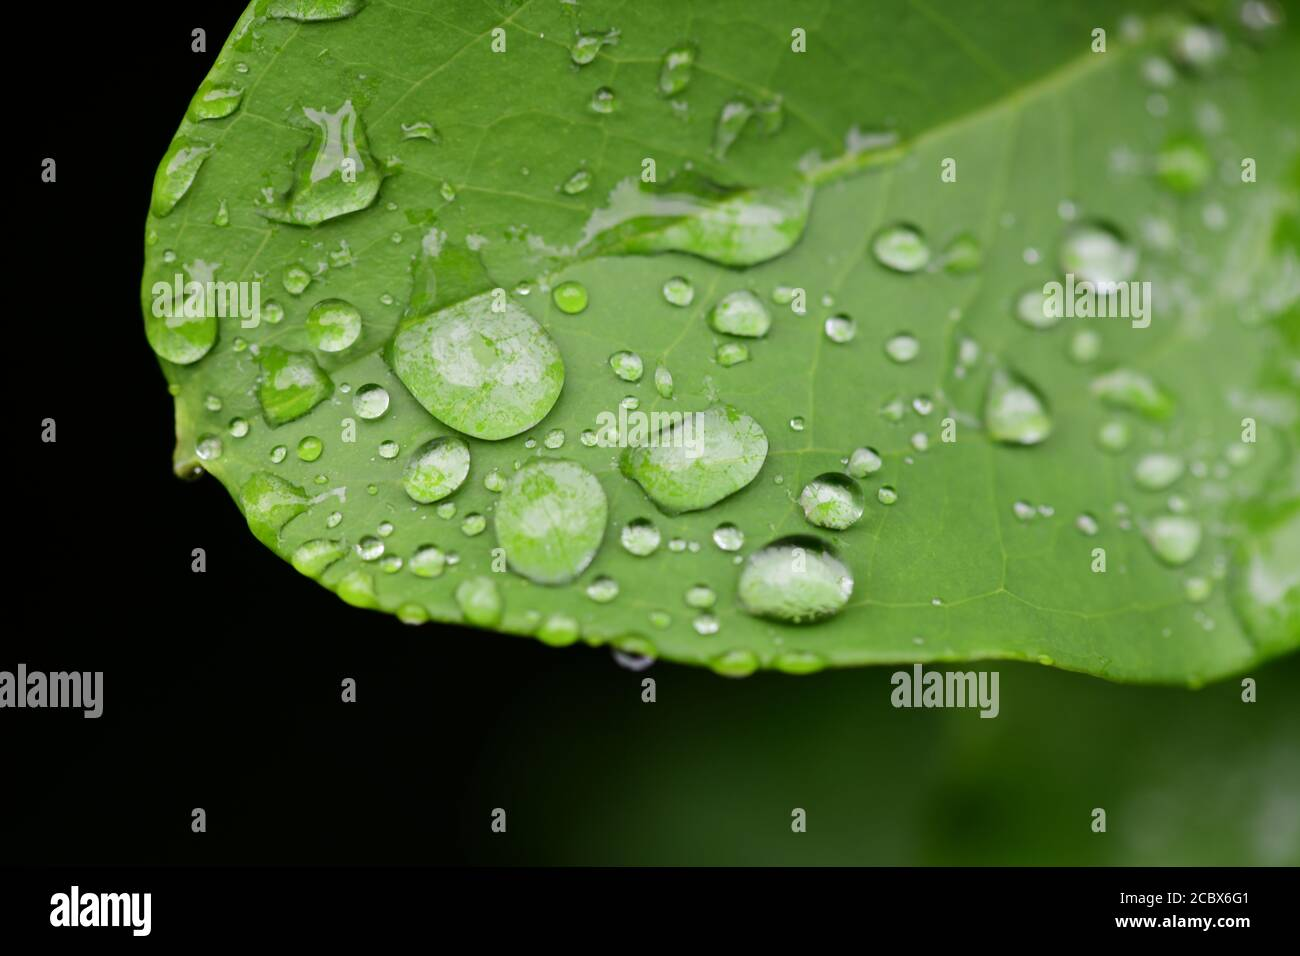 plants-nature-natural-science-hydrophobic-action-of-water-droplets-on-a-plant-leaf-beading-2CBX6G1.jpg